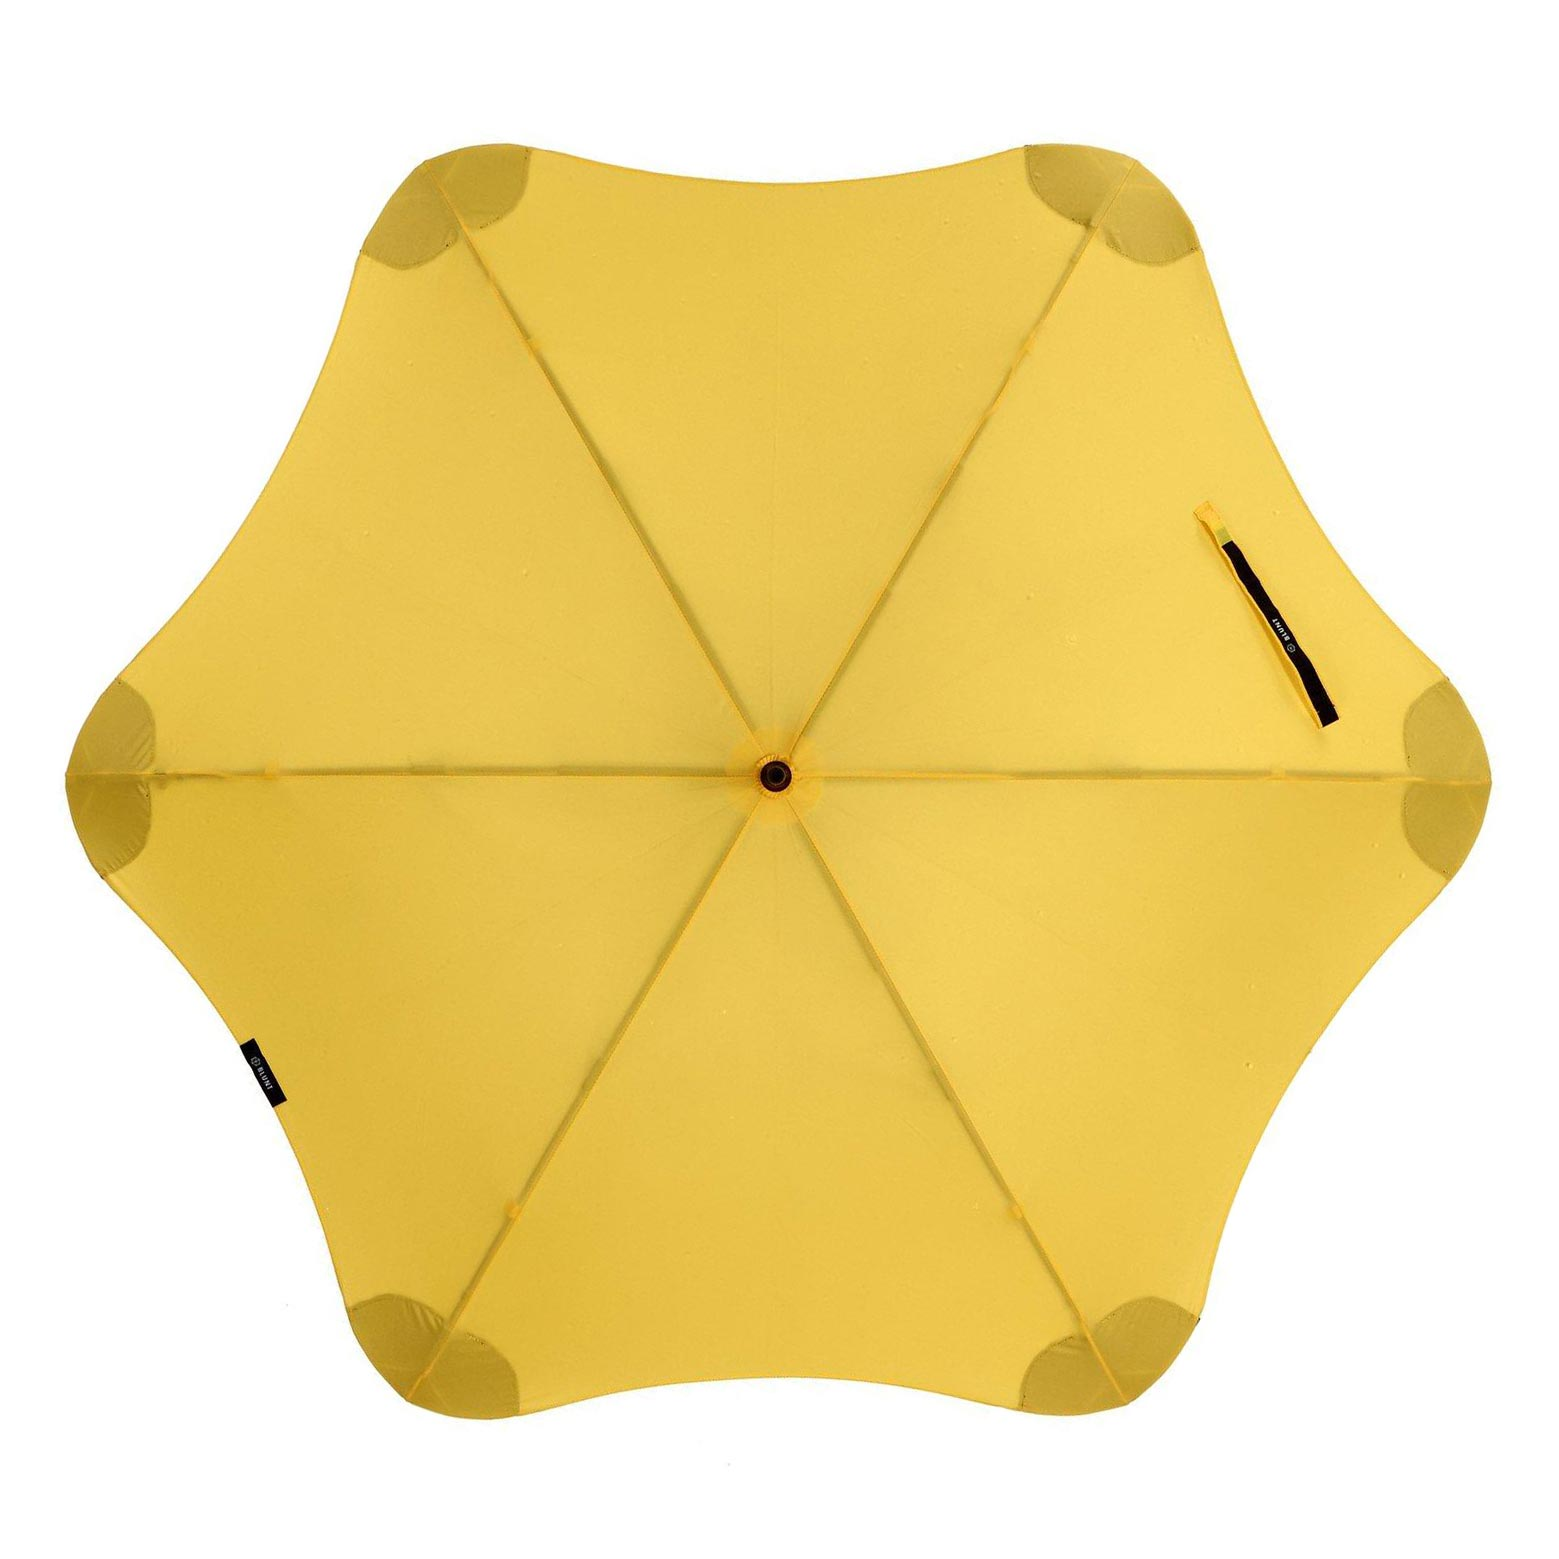 BLUNT umbrella Metro XS Yellow | The Design Gift Shop